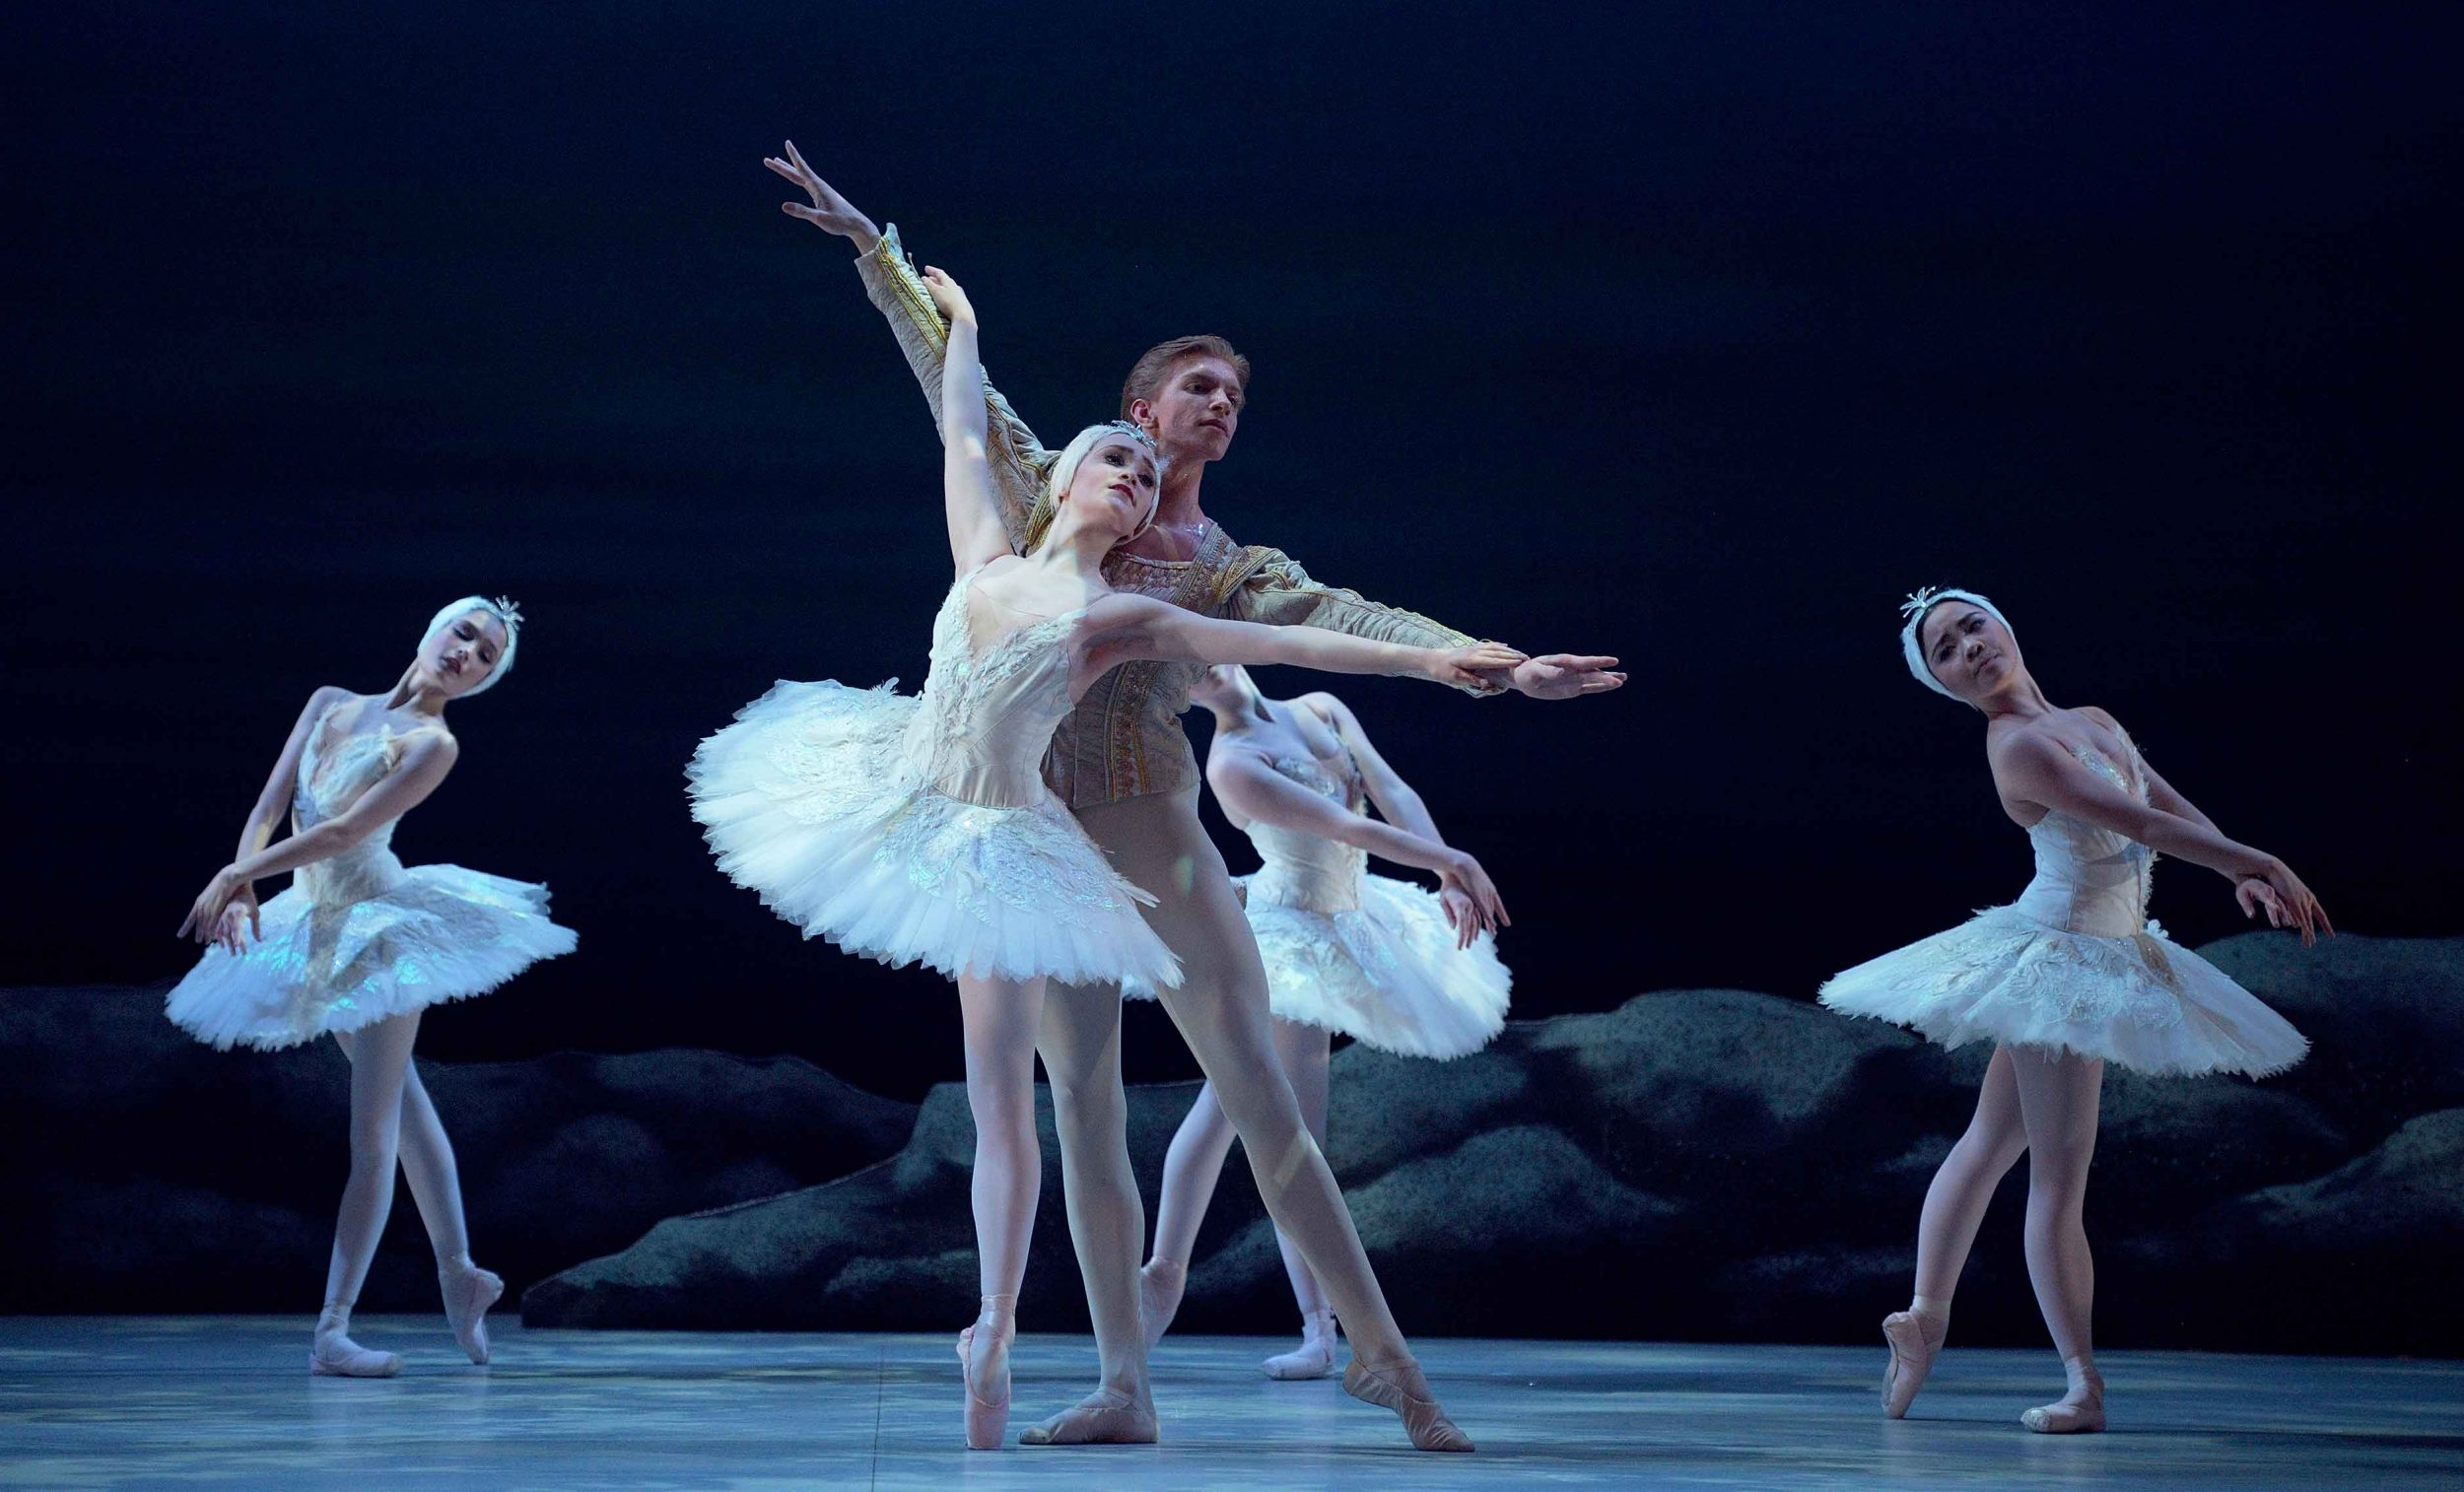 Harvey-Littlefield-as-Prince-Seigfried-Chloe-Keneally-as-Odette-My-First-Ballet-Swan-Lake-©-Laurent-Liotardo